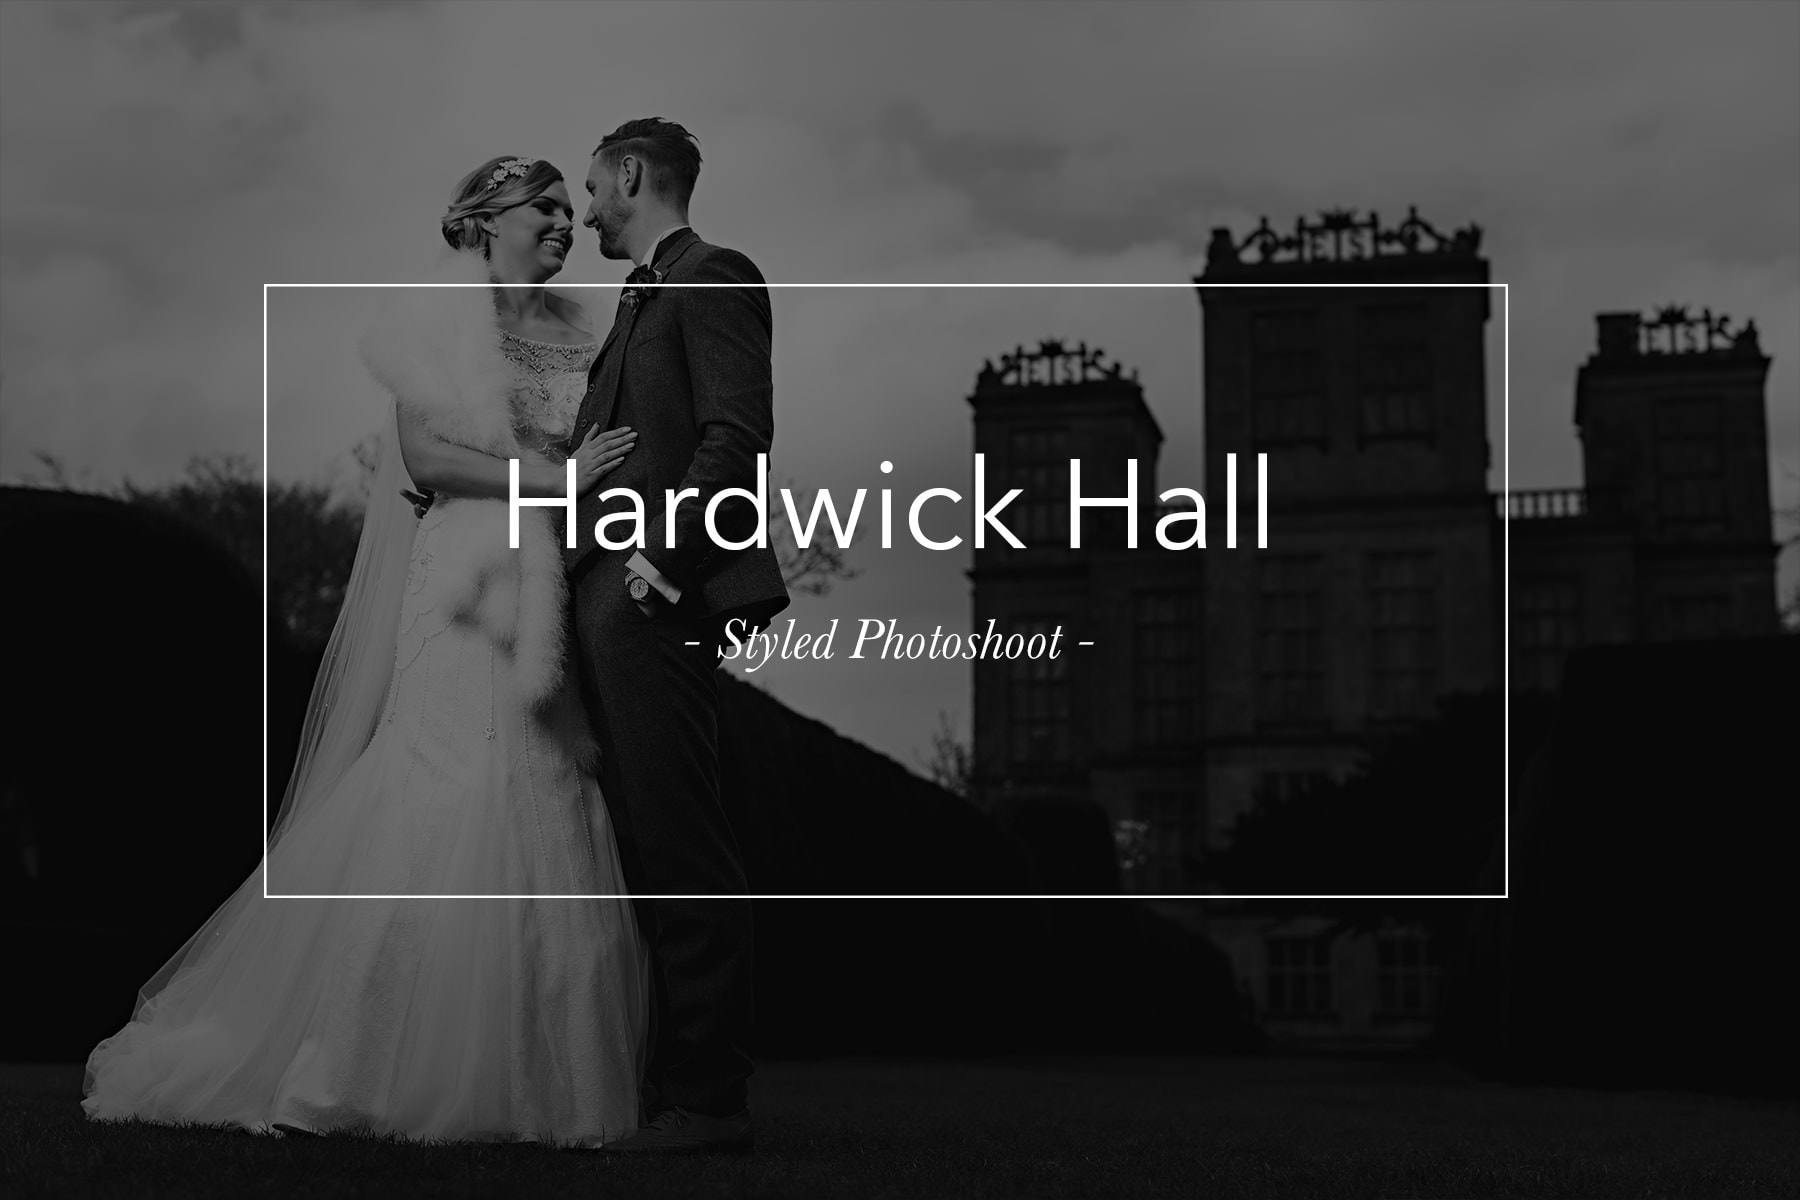 Hardwick Hall wedding photos